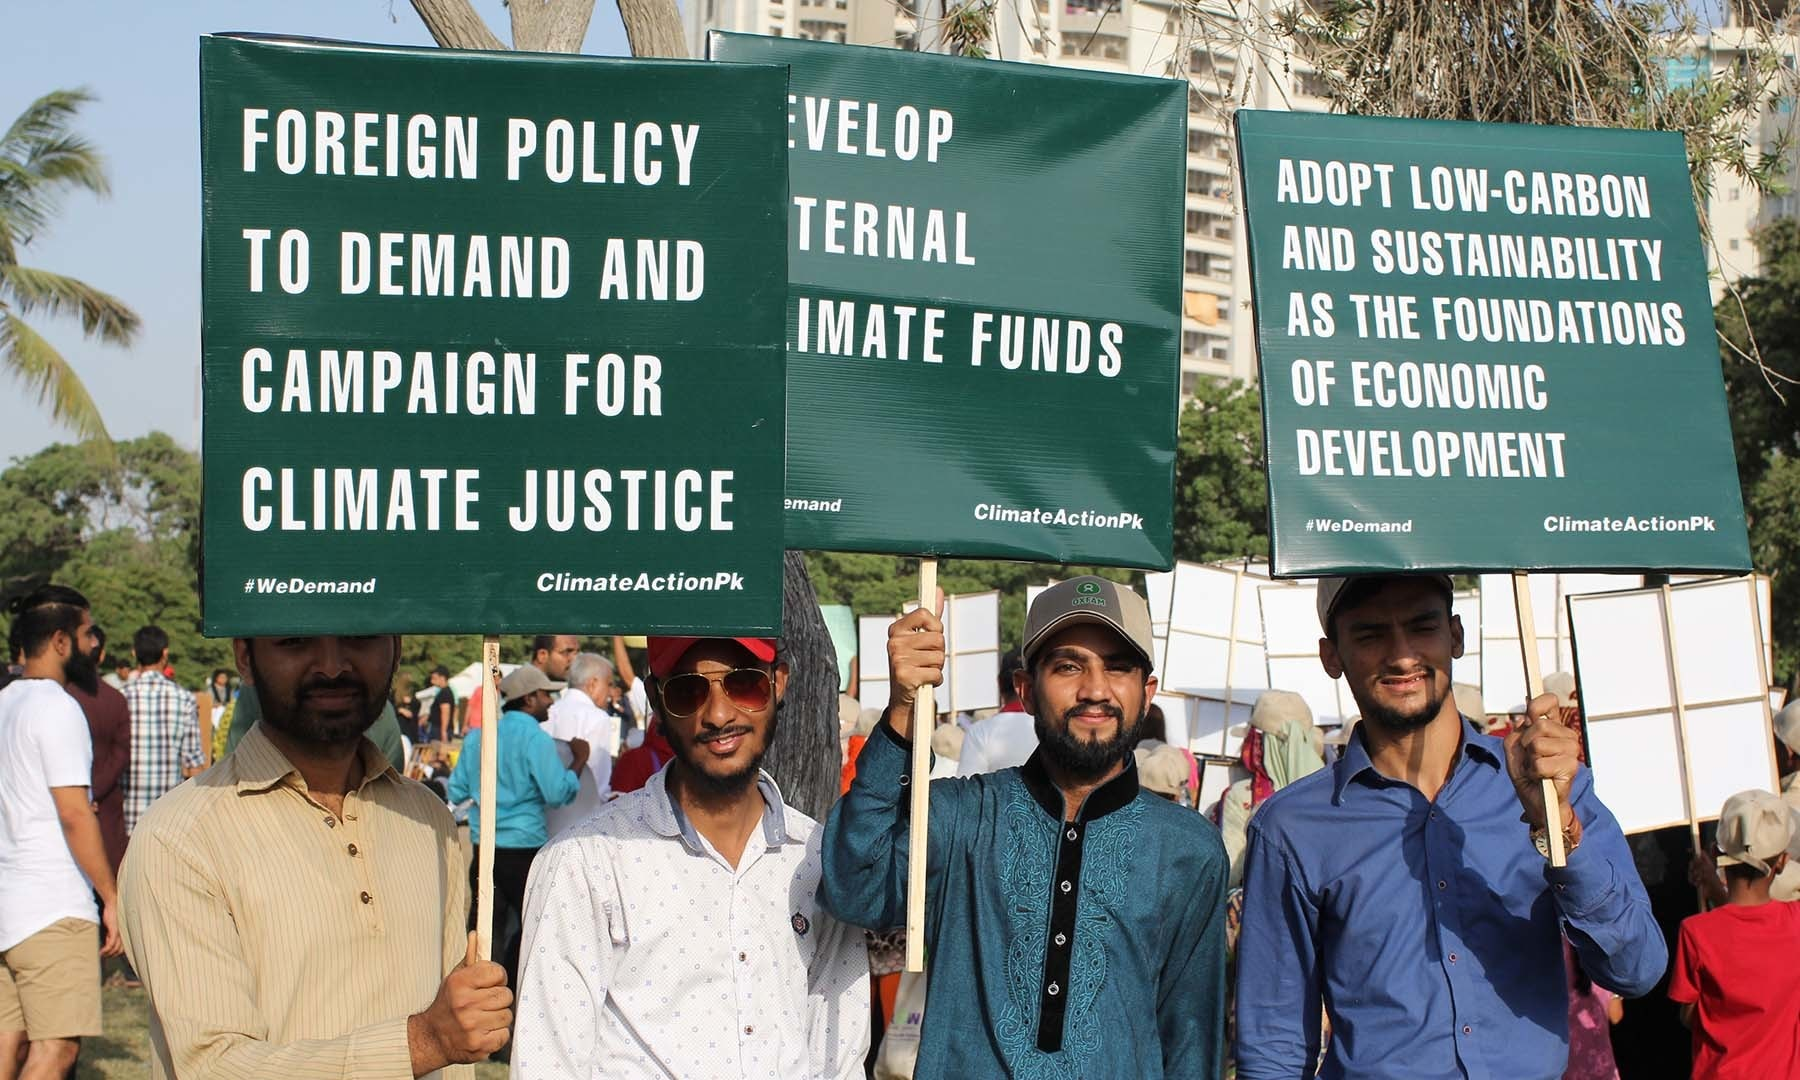 Attendees hold up posters at the climate march in Karachi. — Photo by Kamran Nafees